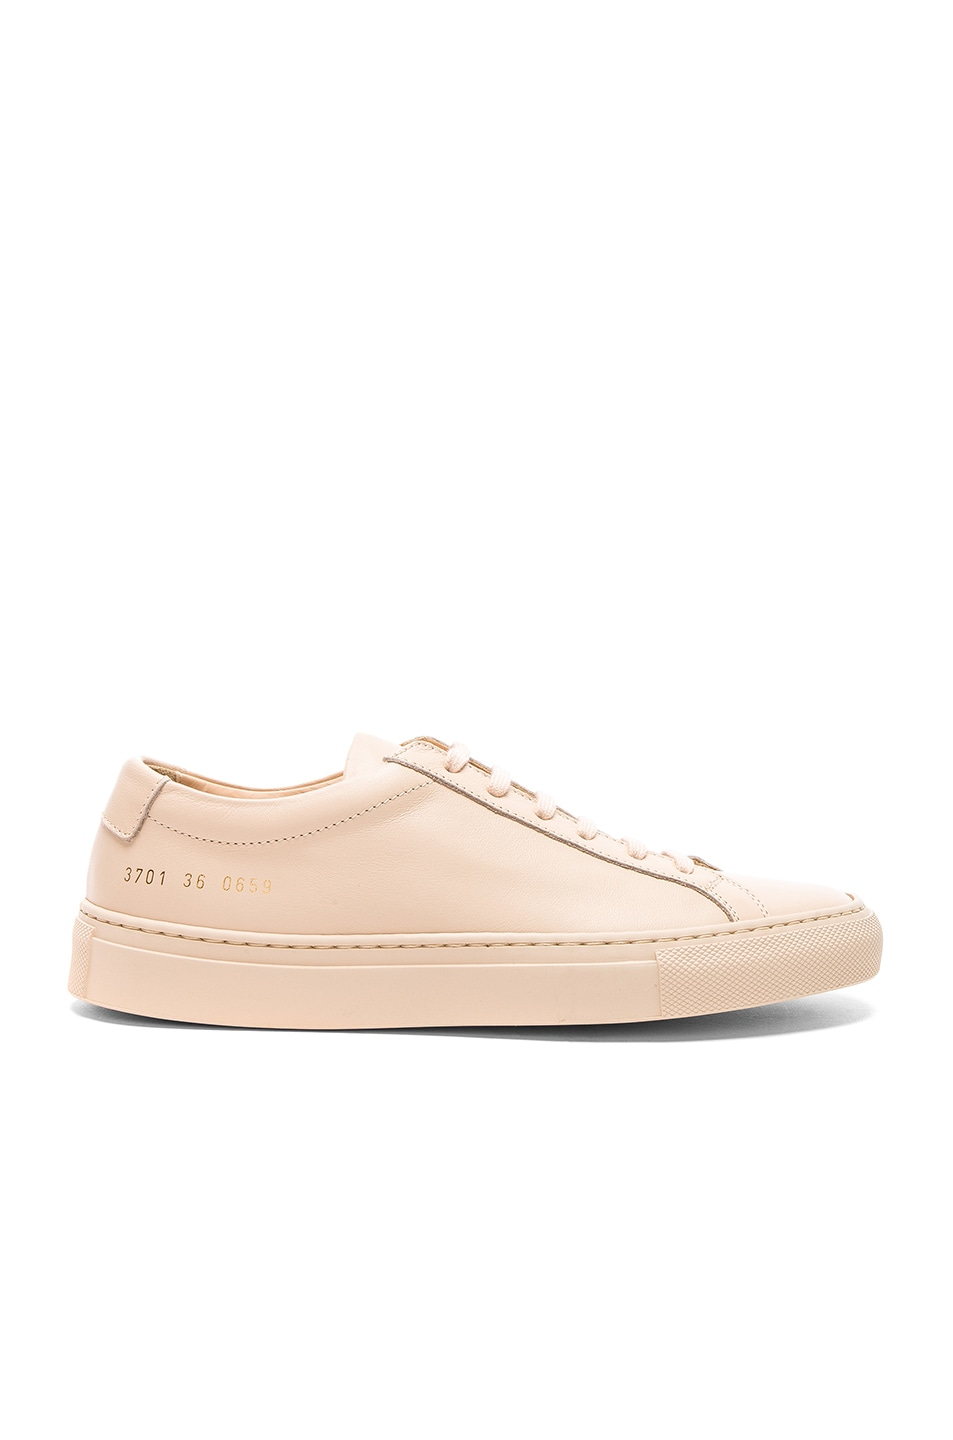 8ce6682b5efa Image 1 of Common Projects Leather Original Achilles Low in Nude